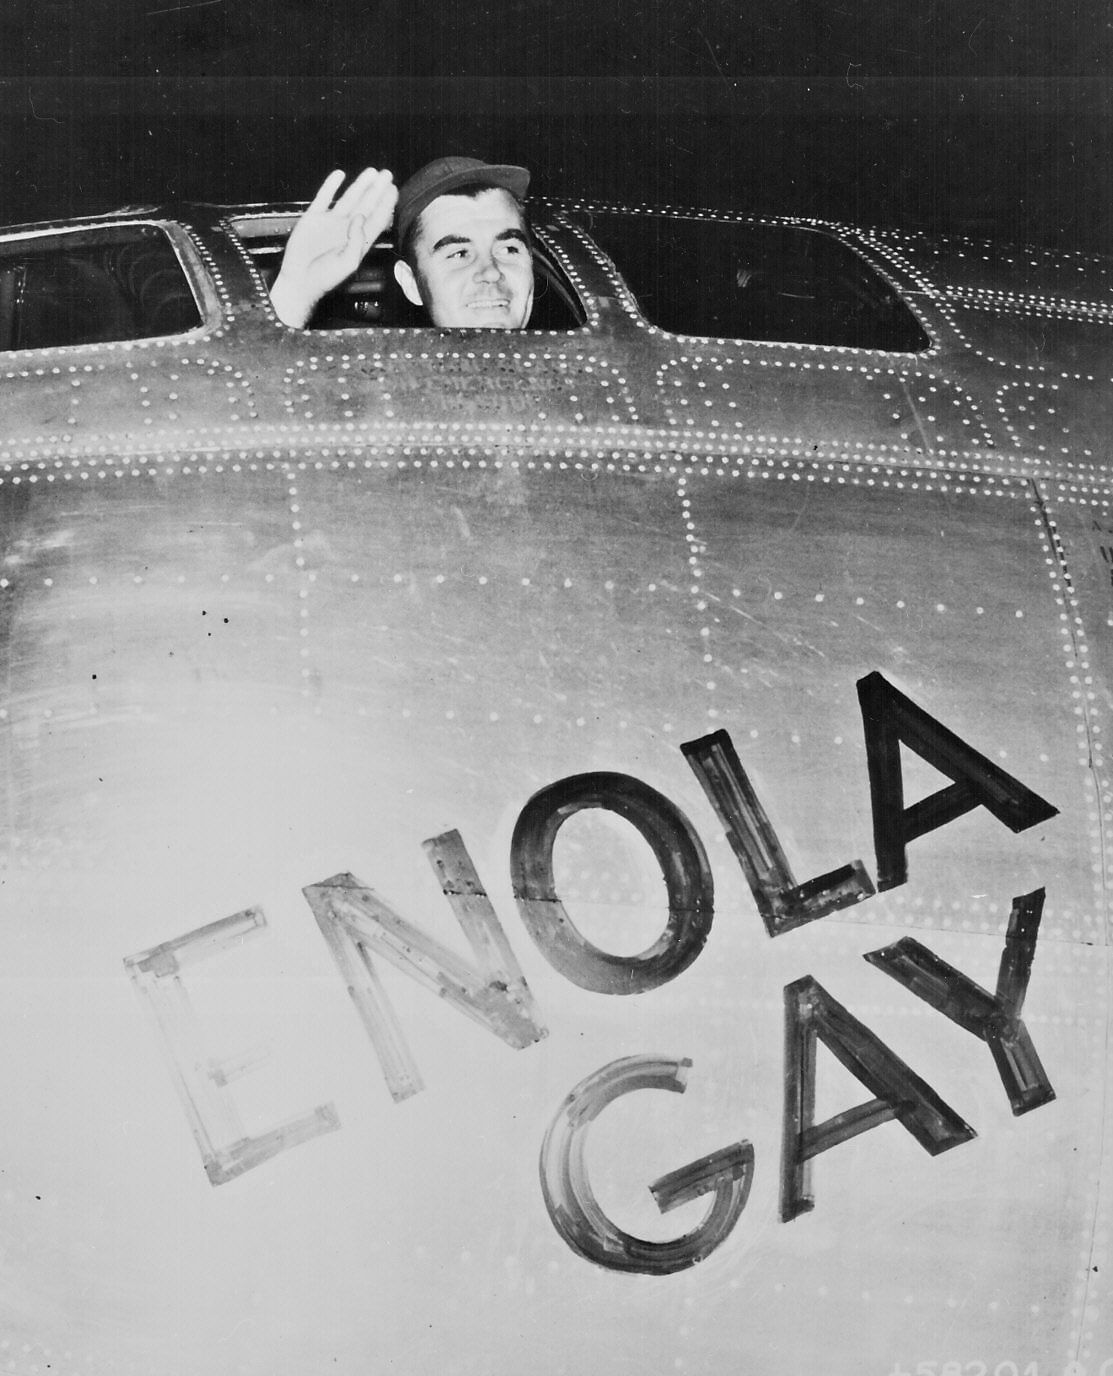 """""""Col. Paul W. Tibbets, Jr., pilot of the ENOLA GAY, the plane that dropped the atomic bomb on Hiroshima, waves from his cockpit before the takeoff, 6 August 1945."""""""